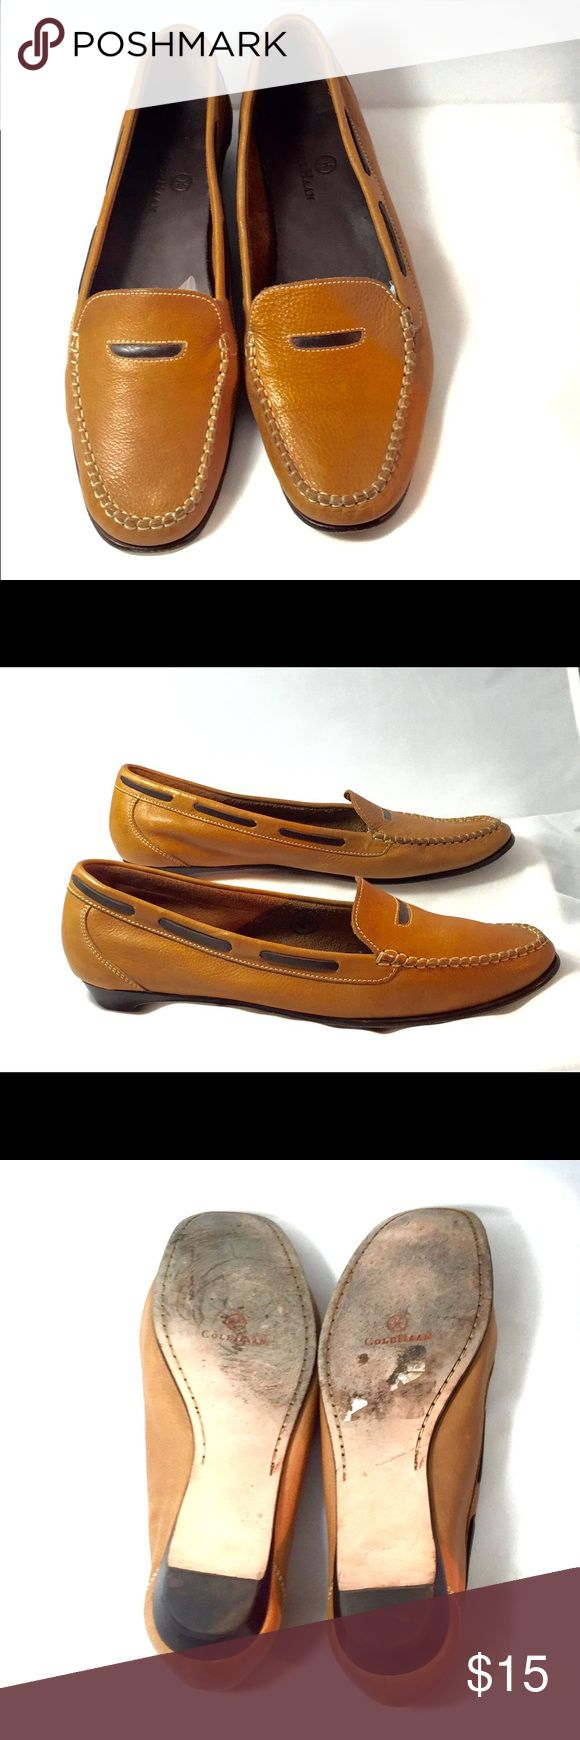 Cole Haan tan loafers Sz 8.5 Consignment item. Slight wear on the soles. Very comfy!! Cole Haan Shoes Flats & Loafers